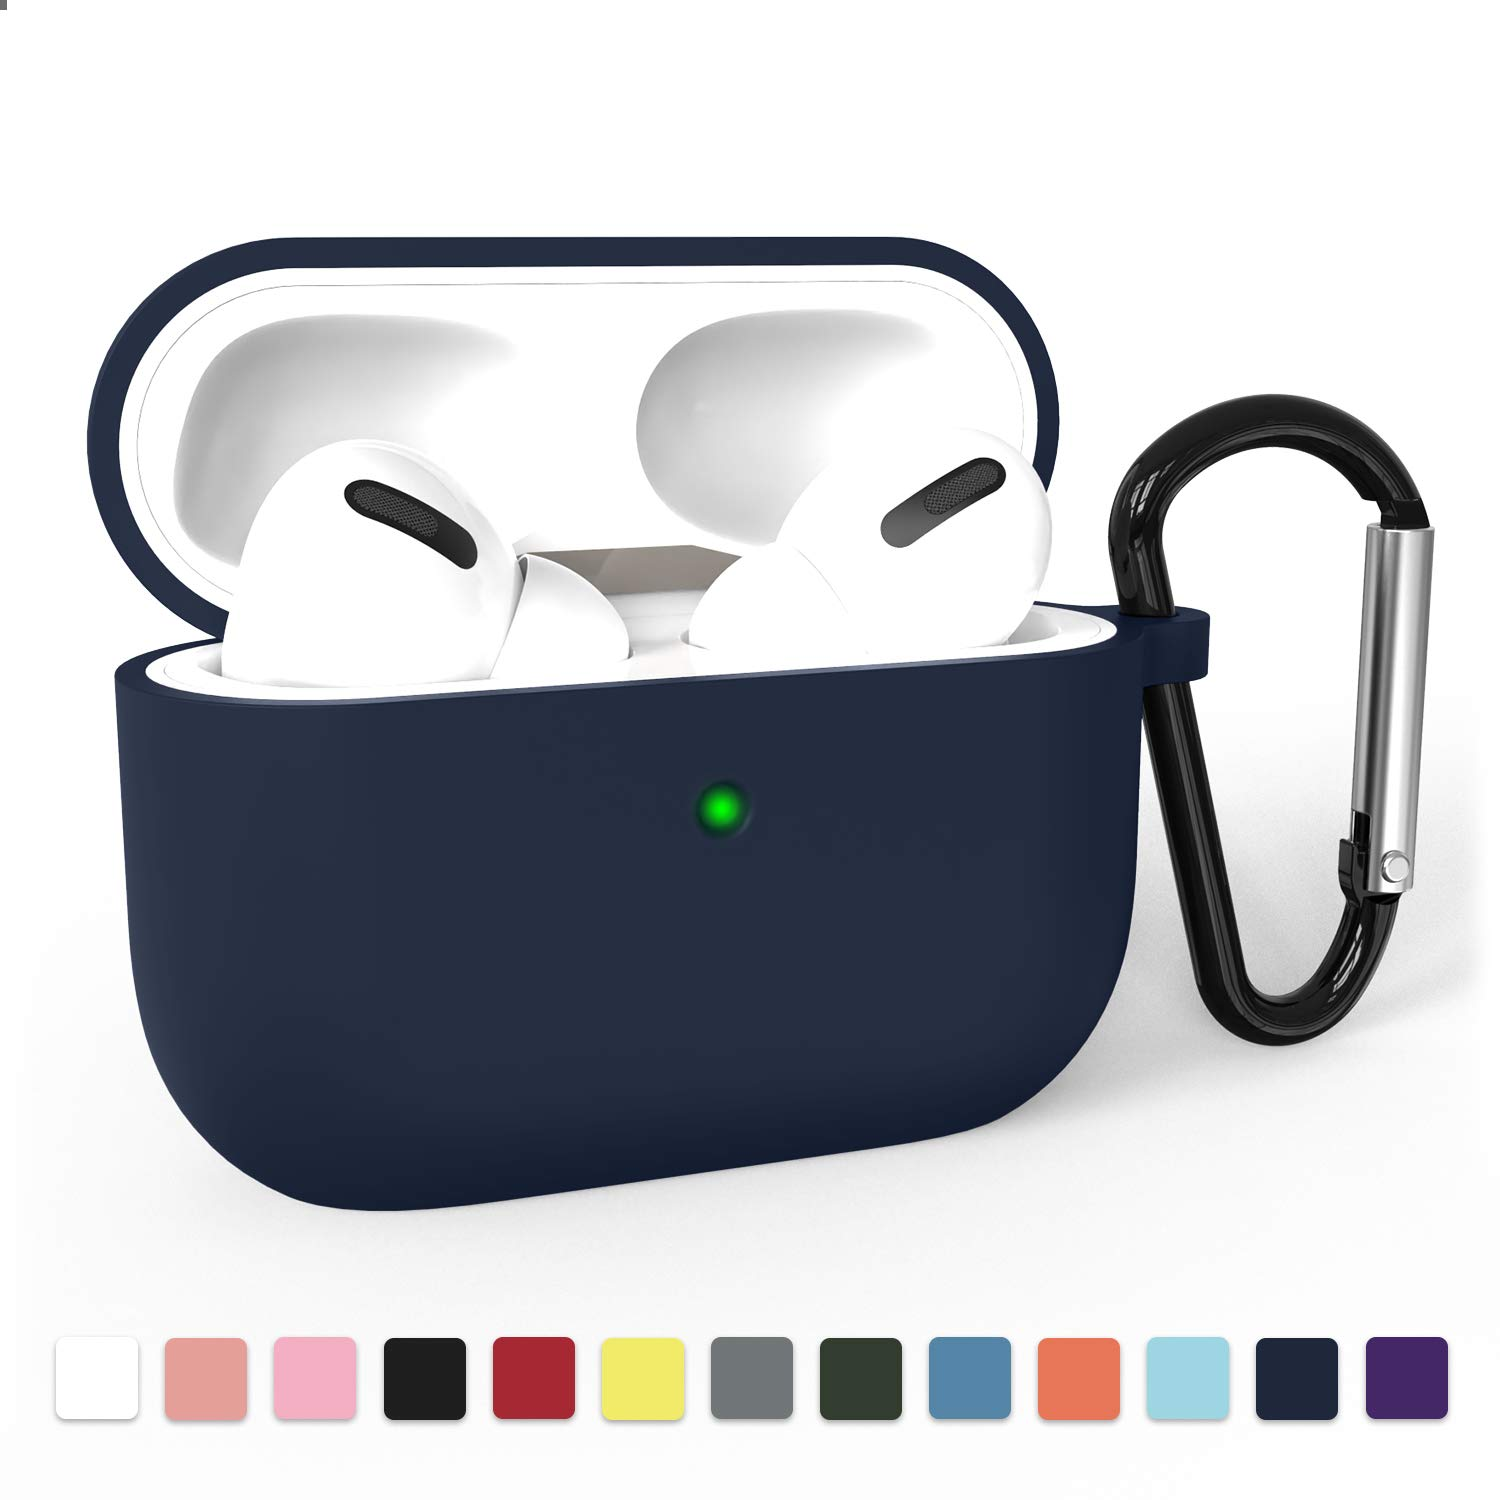 Airpods Pro Case Cover, Adepoy Soft Silicone Shockproof Protective Cover with Keychain Case Compatible for Airpods Pro 2019 [Front LED Visible], Navy